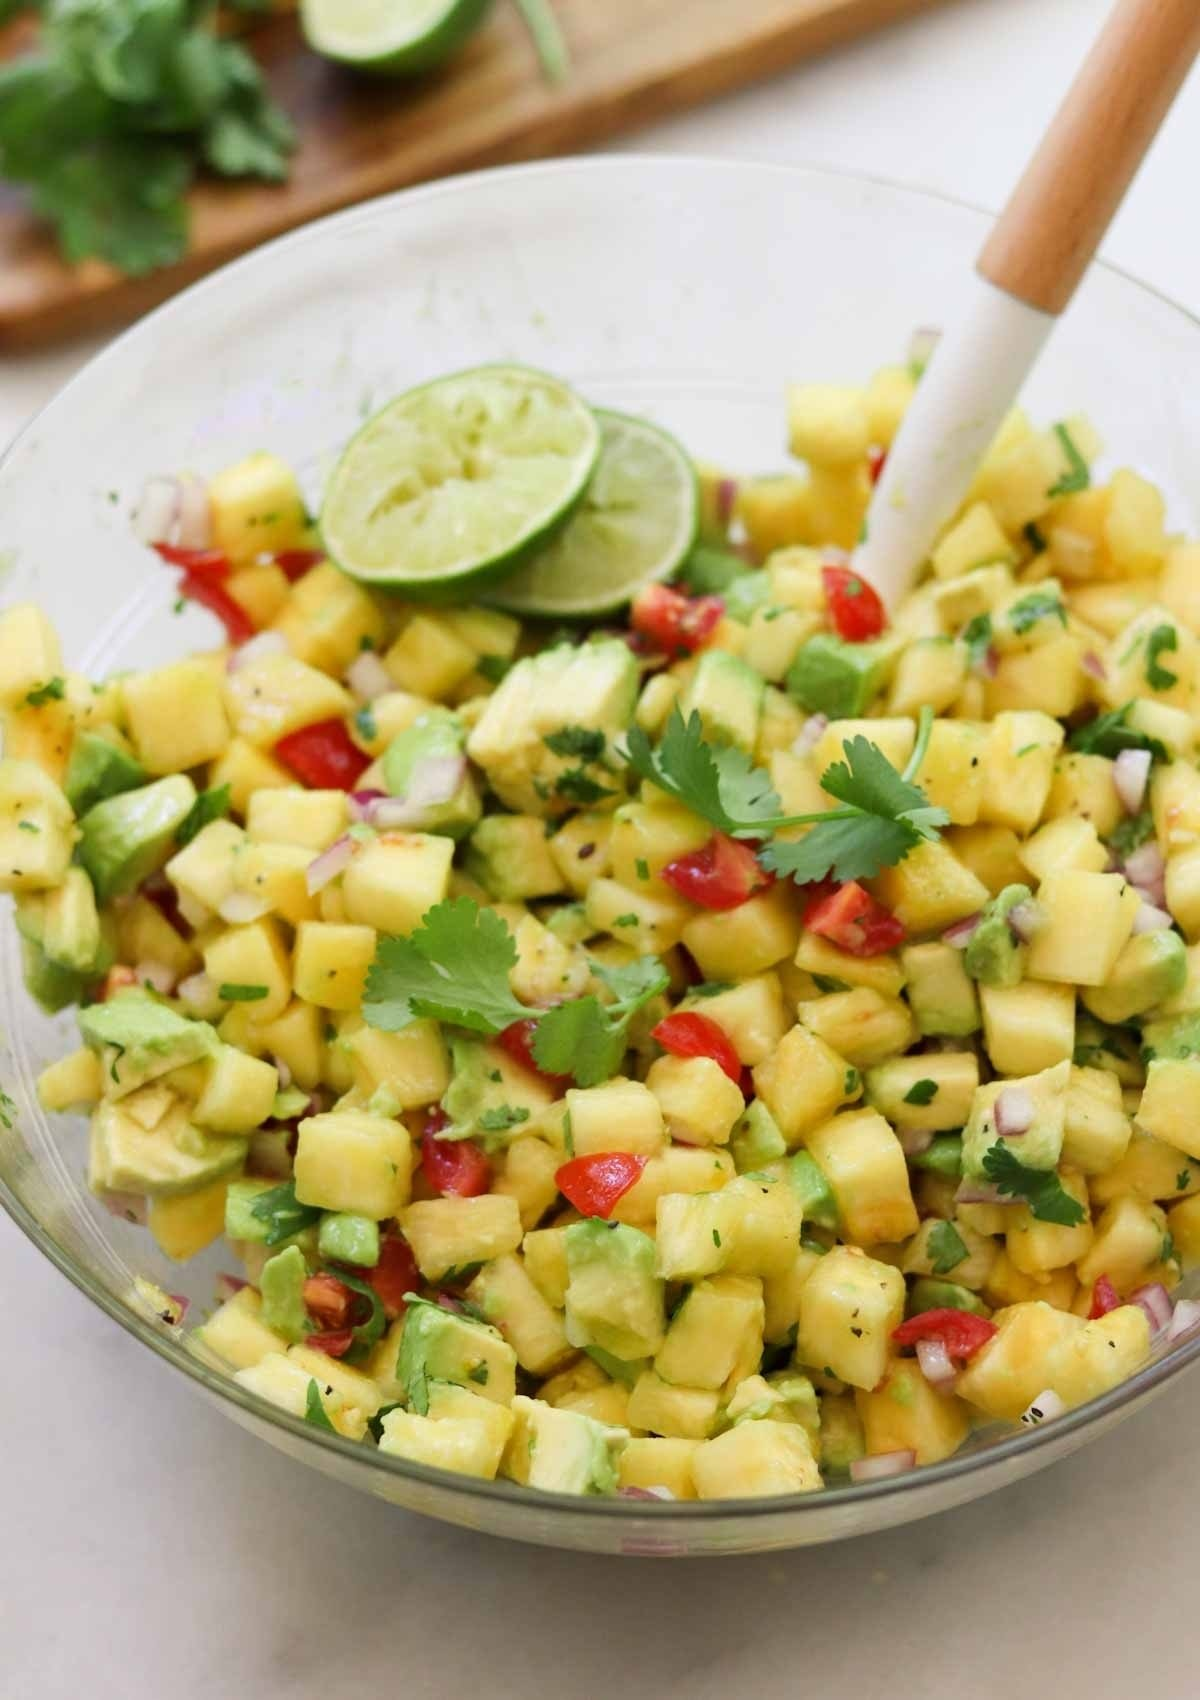 Close up of the finished pineapple salsa in a large glass bowl, garnished with cilantro and lime slices.